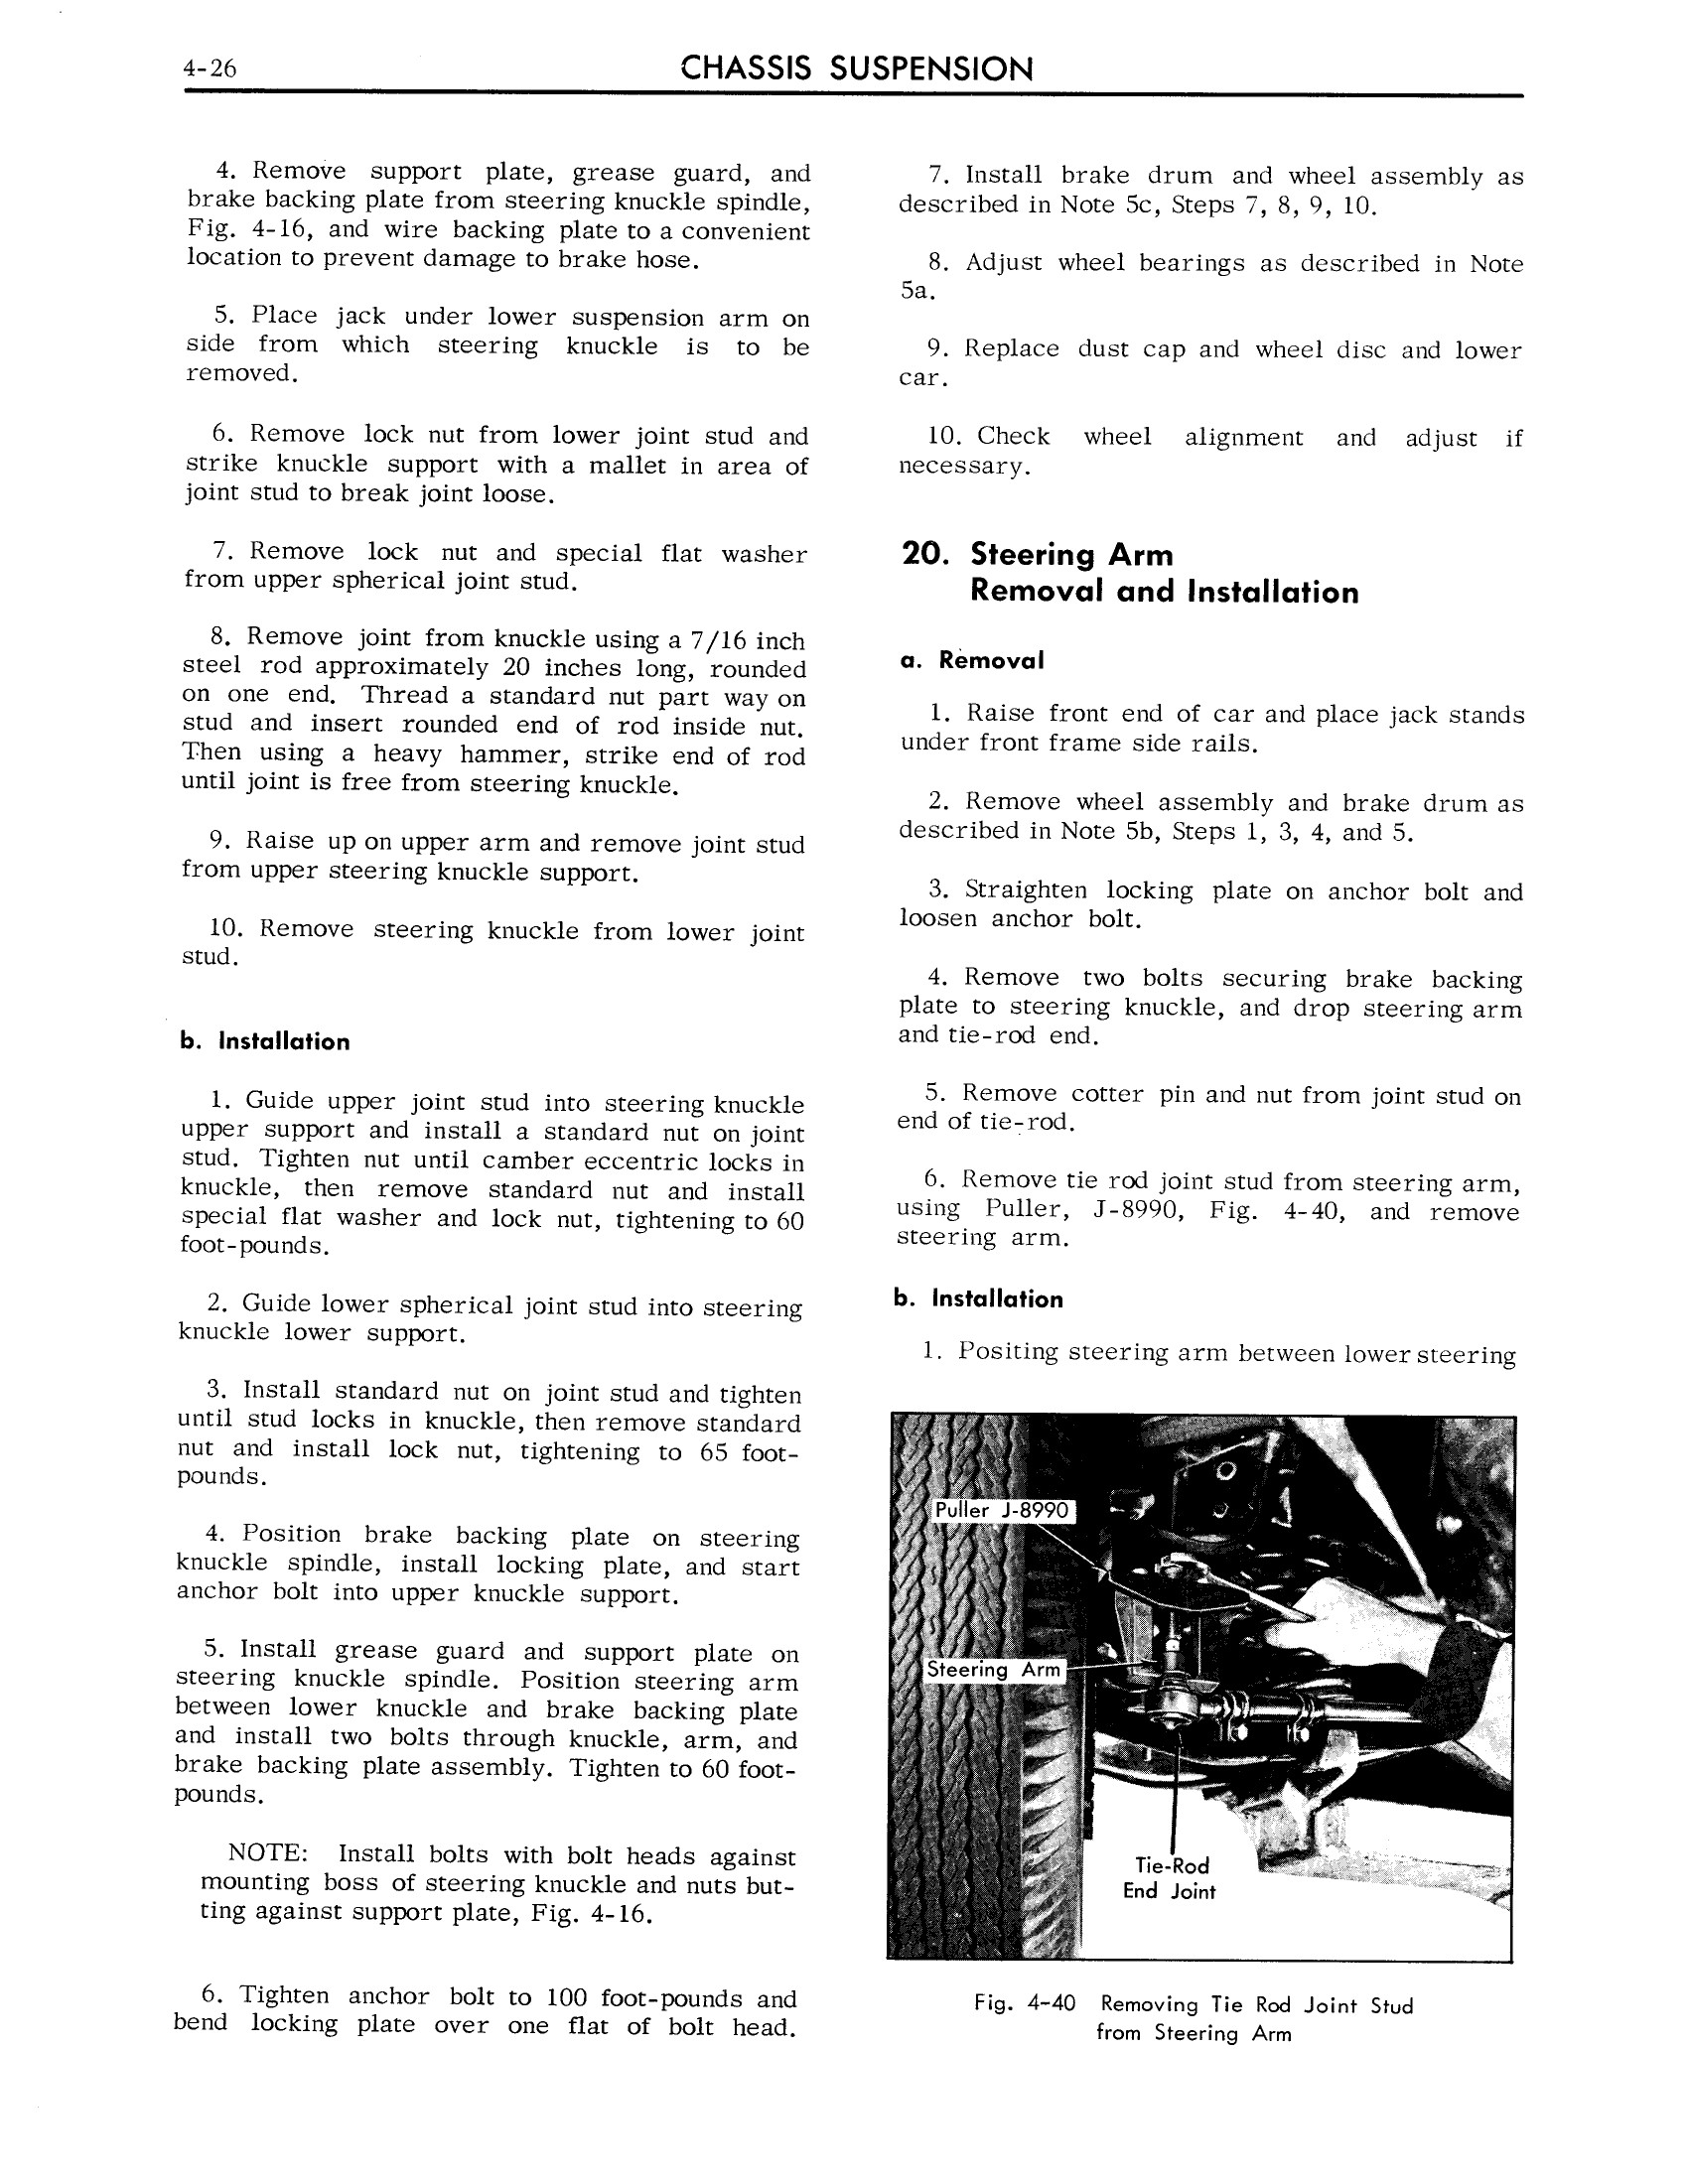 1963 Cadillac Shop Manual- Chassis Suspension Page 26 of 36